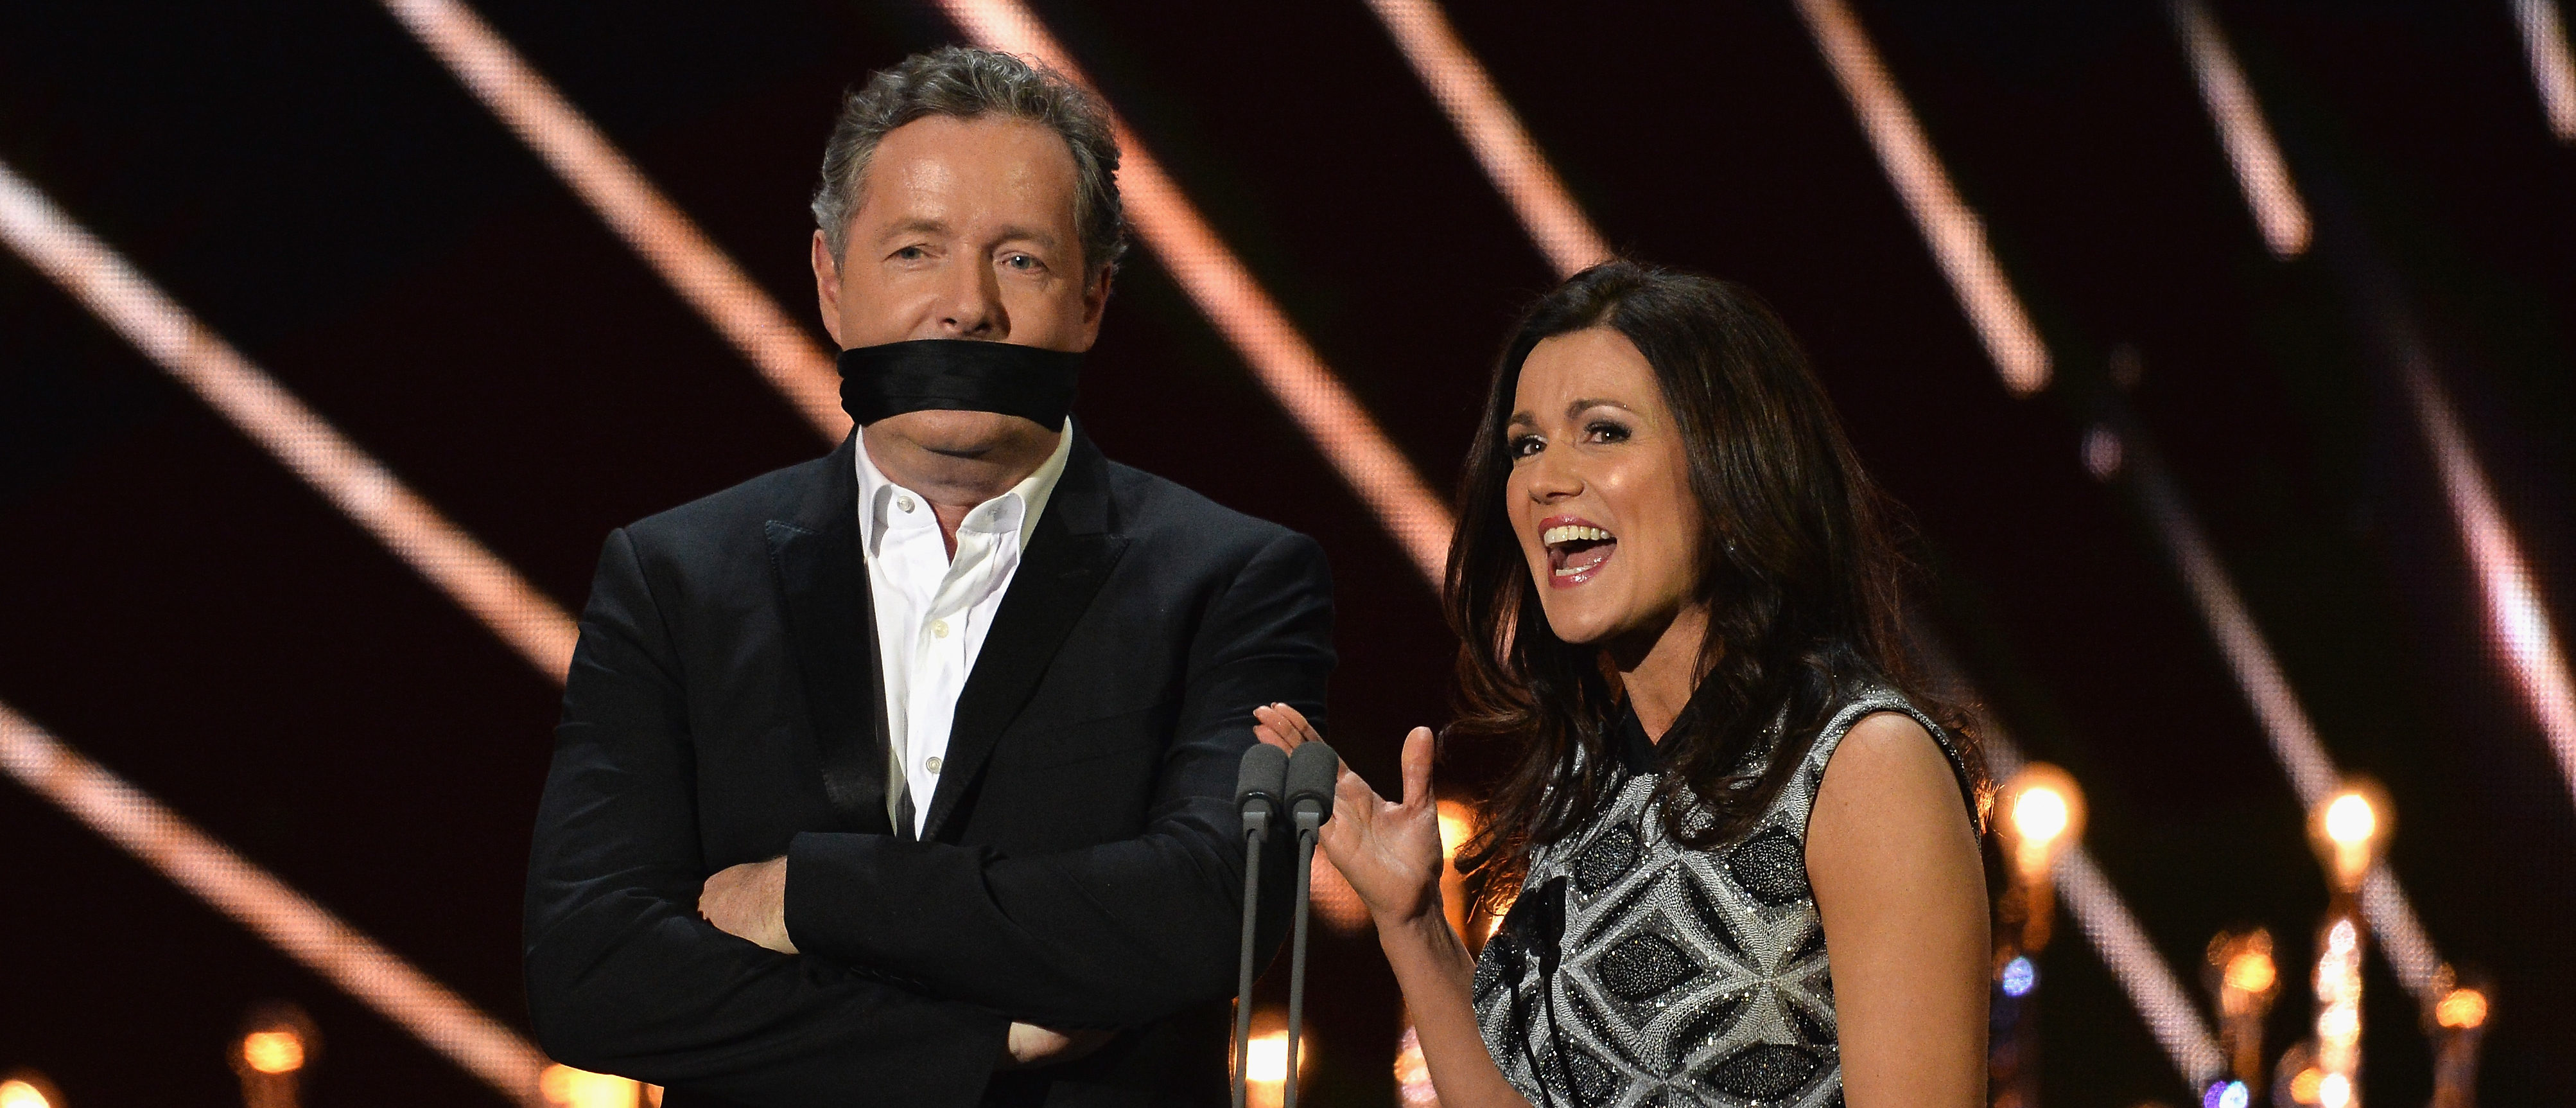 LONDON, ENGLAND - JANUARY 25: Piers Morgan and Susanna Reid on stage during the National Television Awards at The O2 Arena on January 25, 2017 in London, England. (Photo by Jeff Spicer/Getty Images)